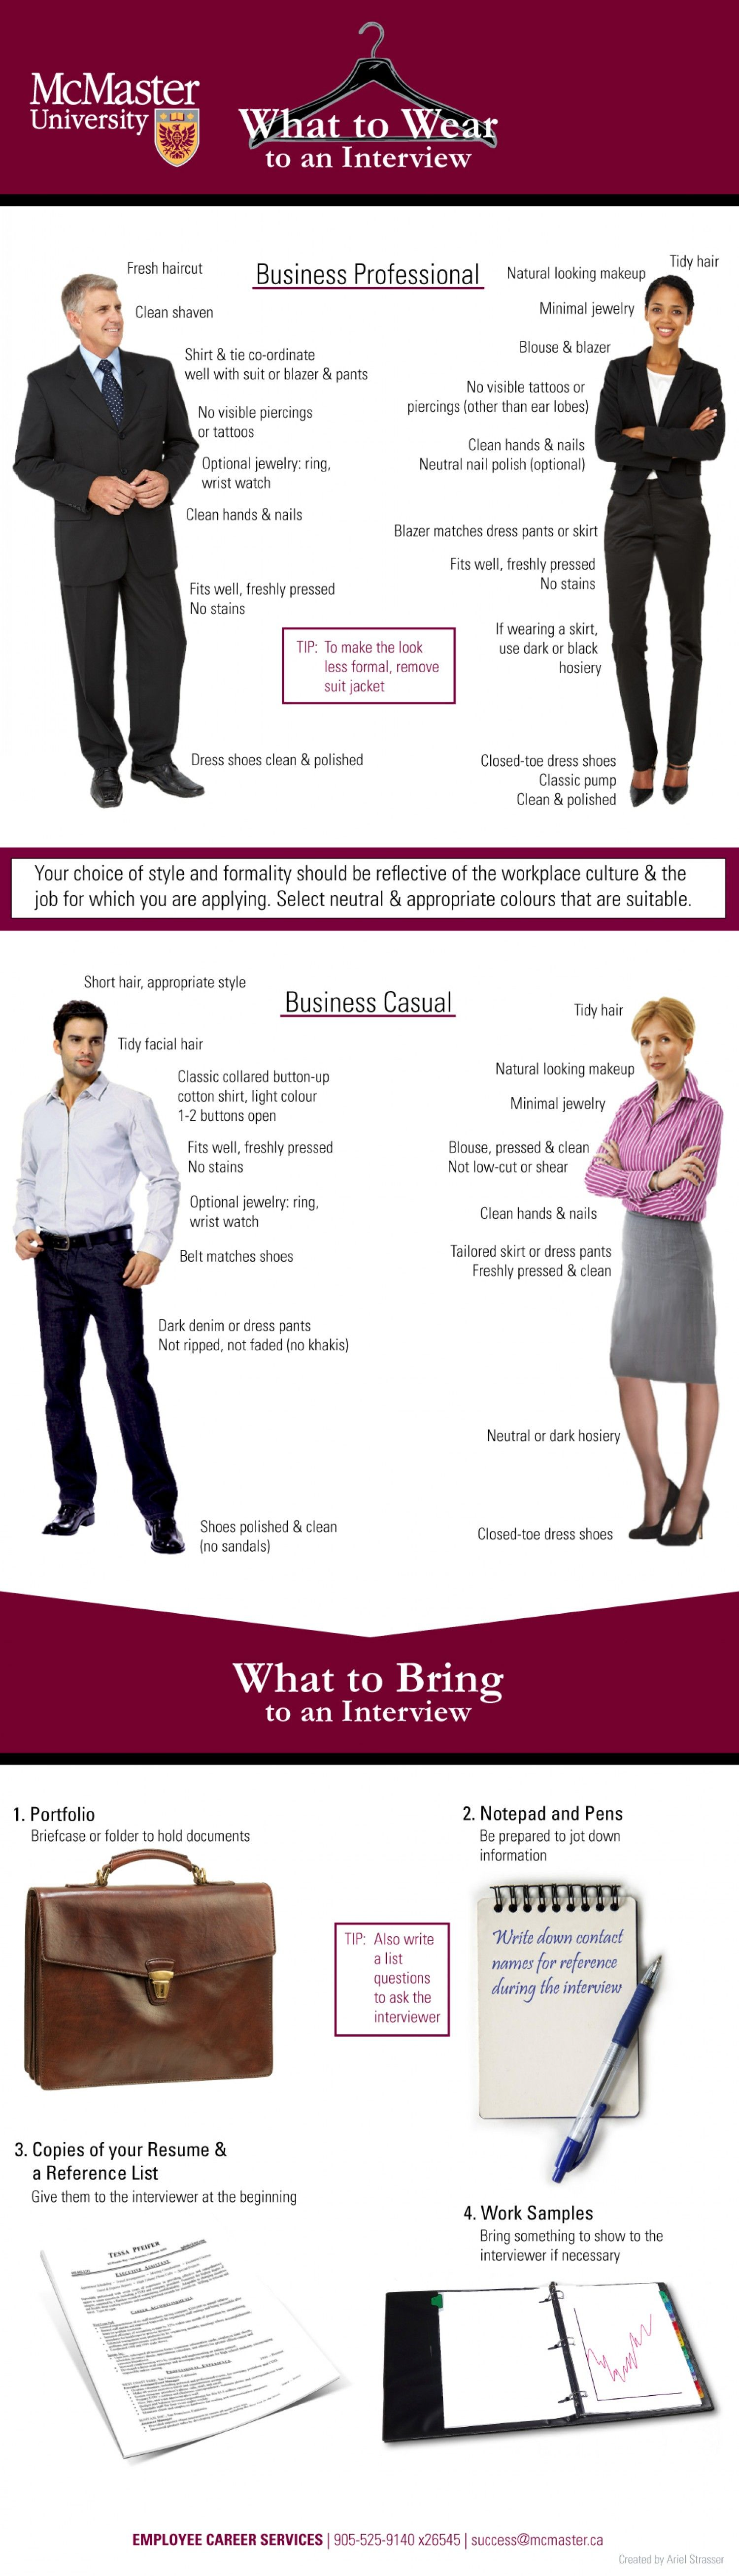 what to wear and bring to a job interview infographic this is from